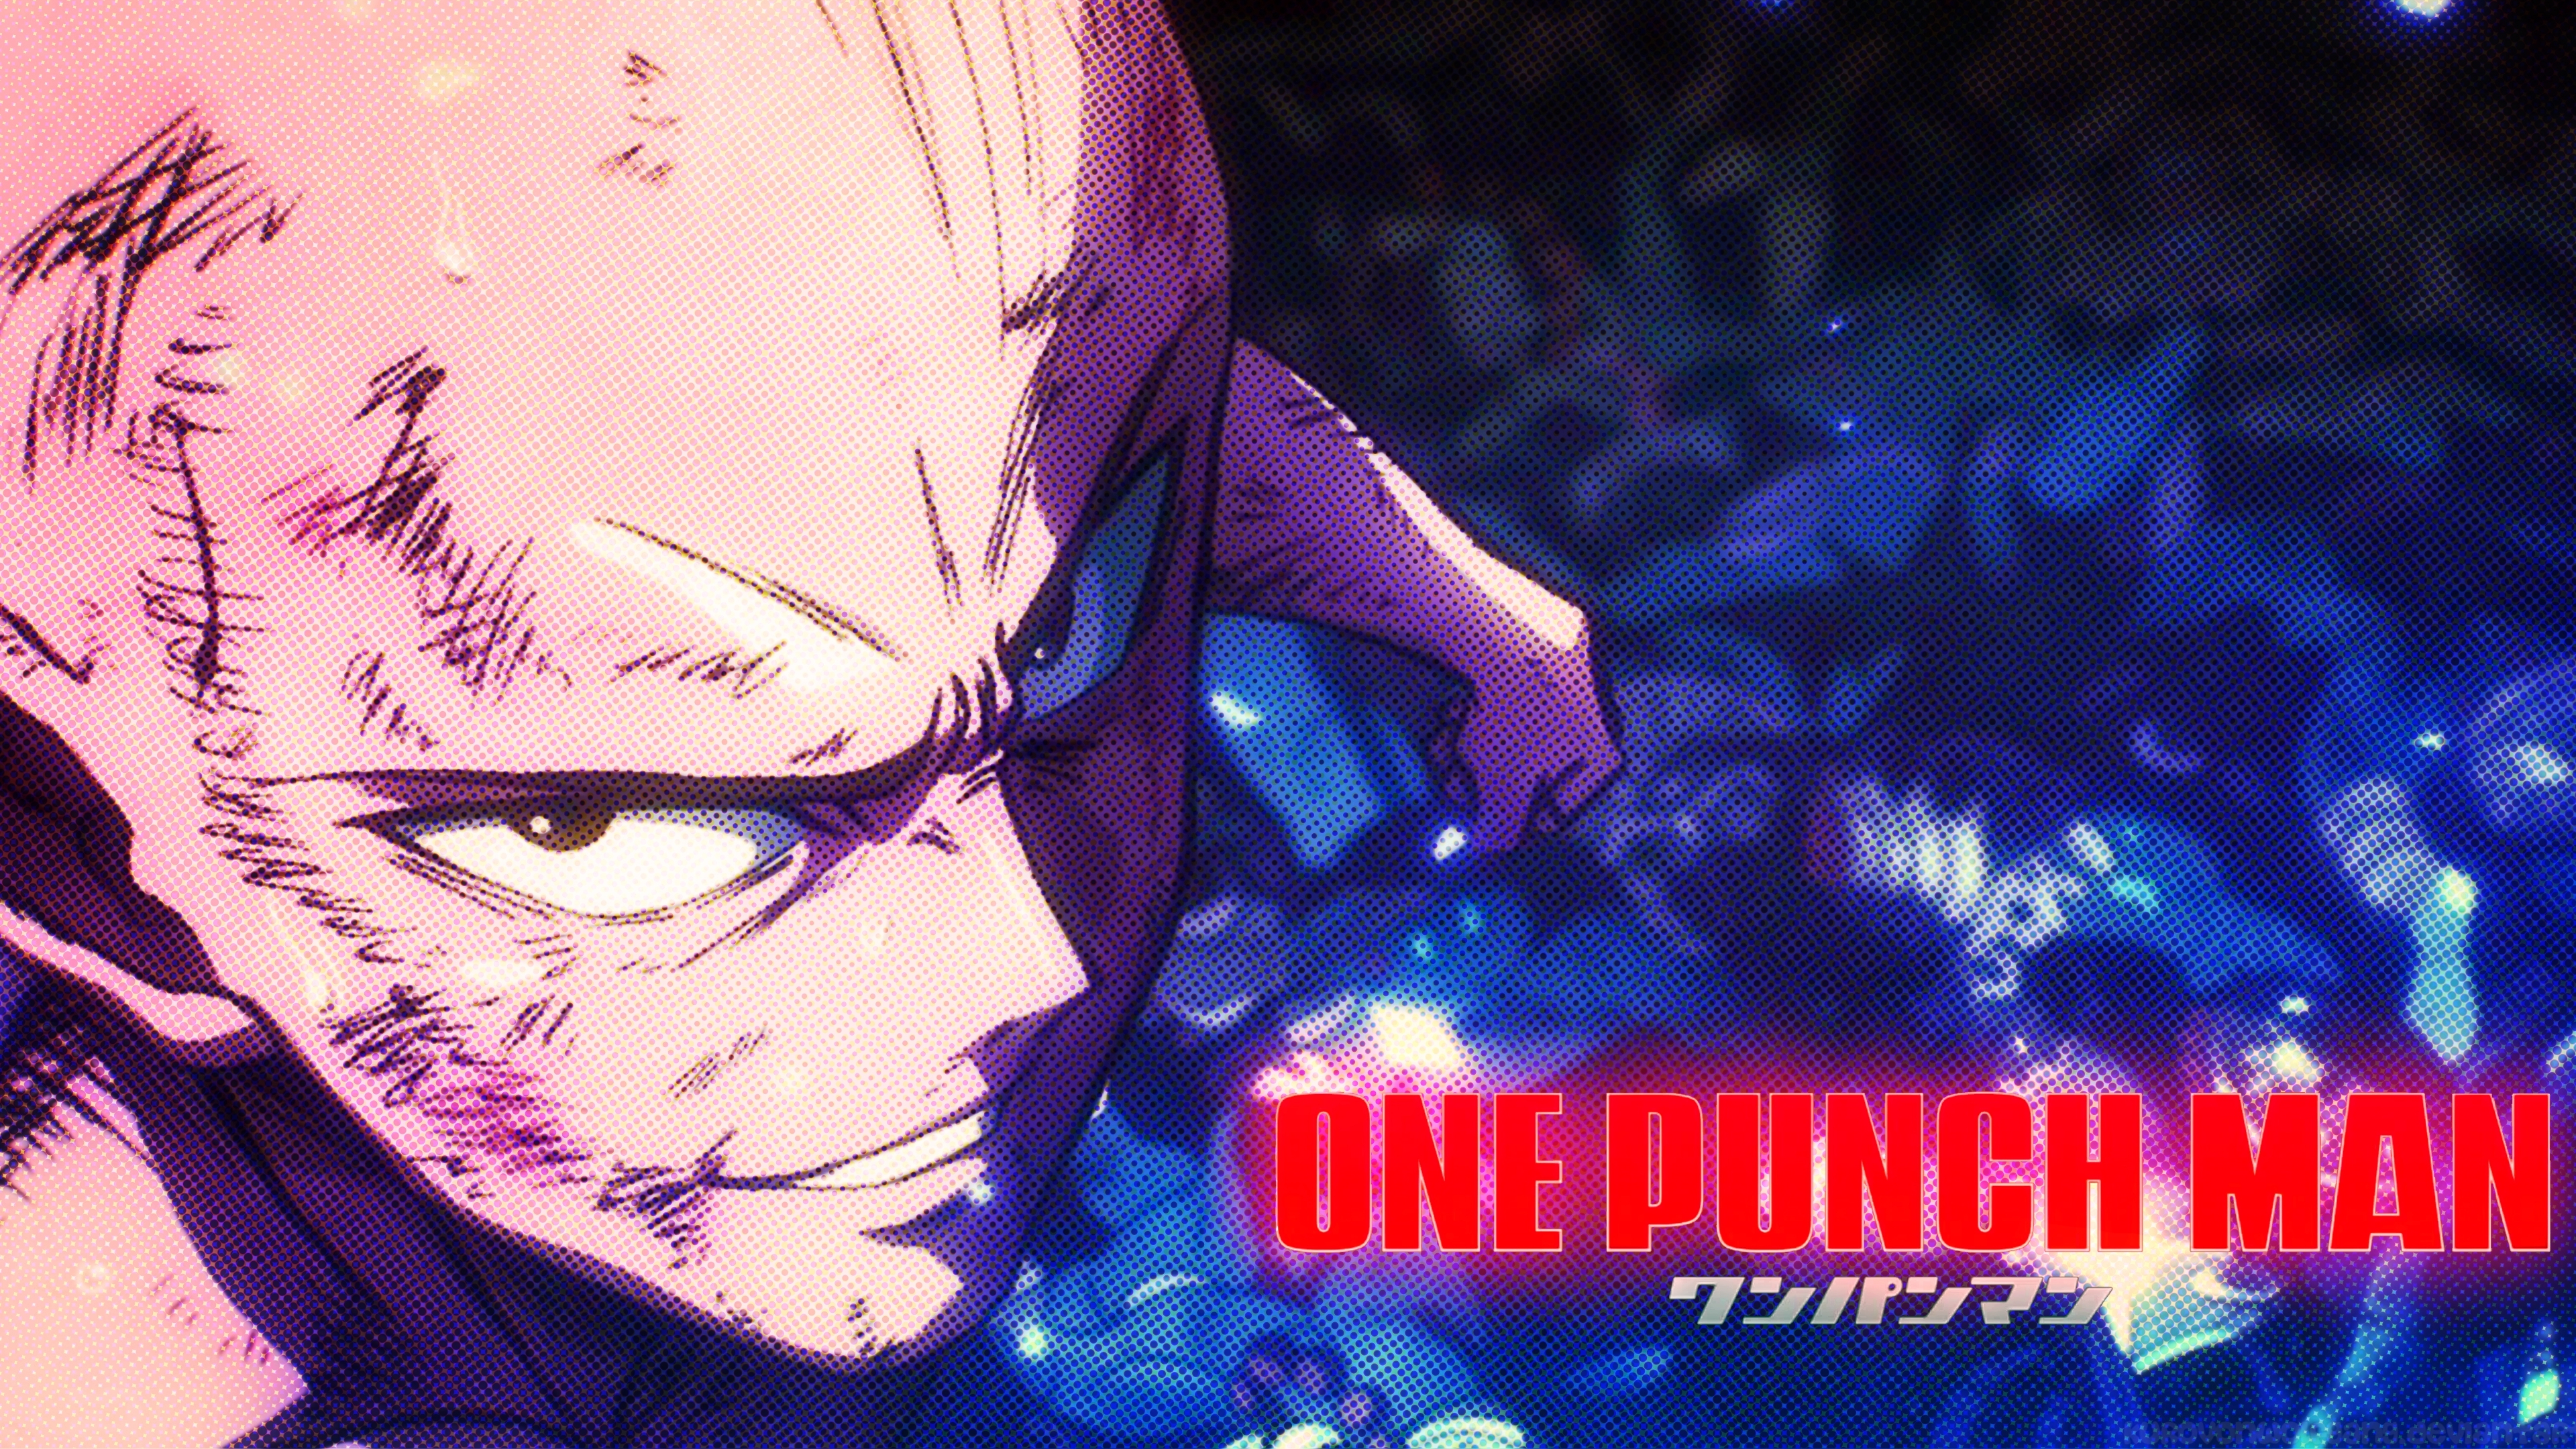 Saitama One Punch Man Anime Wallpaper Id 3215